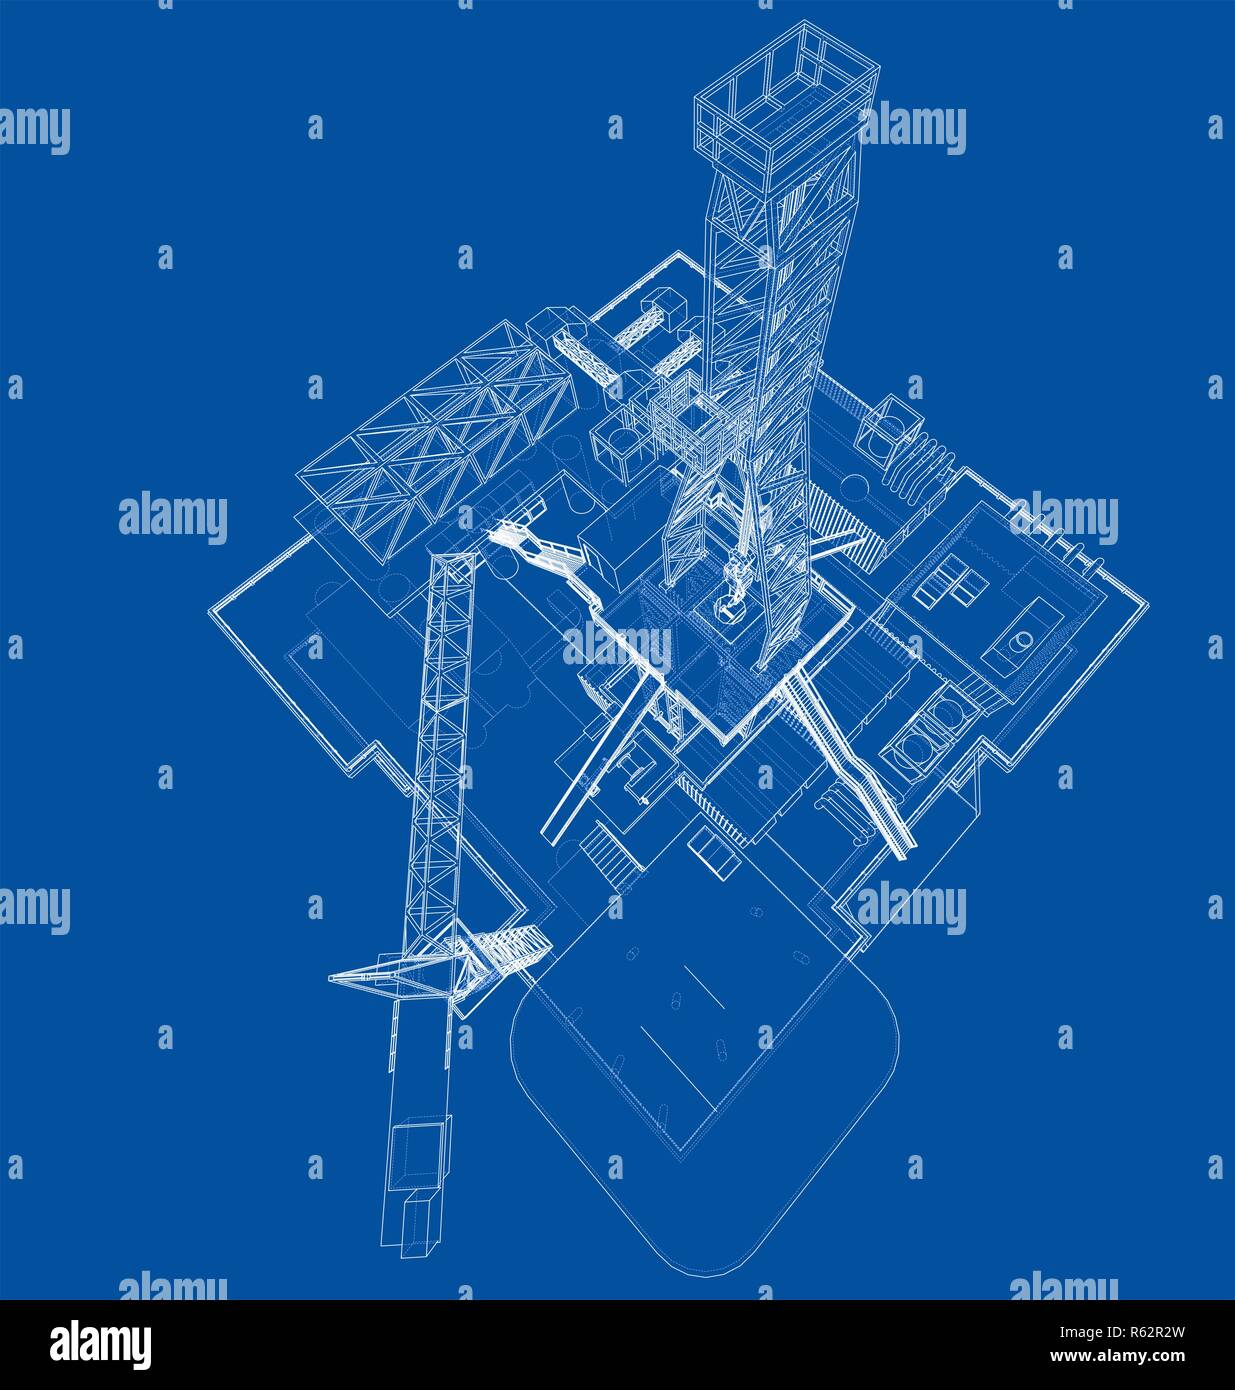 Gas Well Stock Photos Images Page 2 Alamy Schematic Offshore Oil Rig Drilling Platform Concept Image